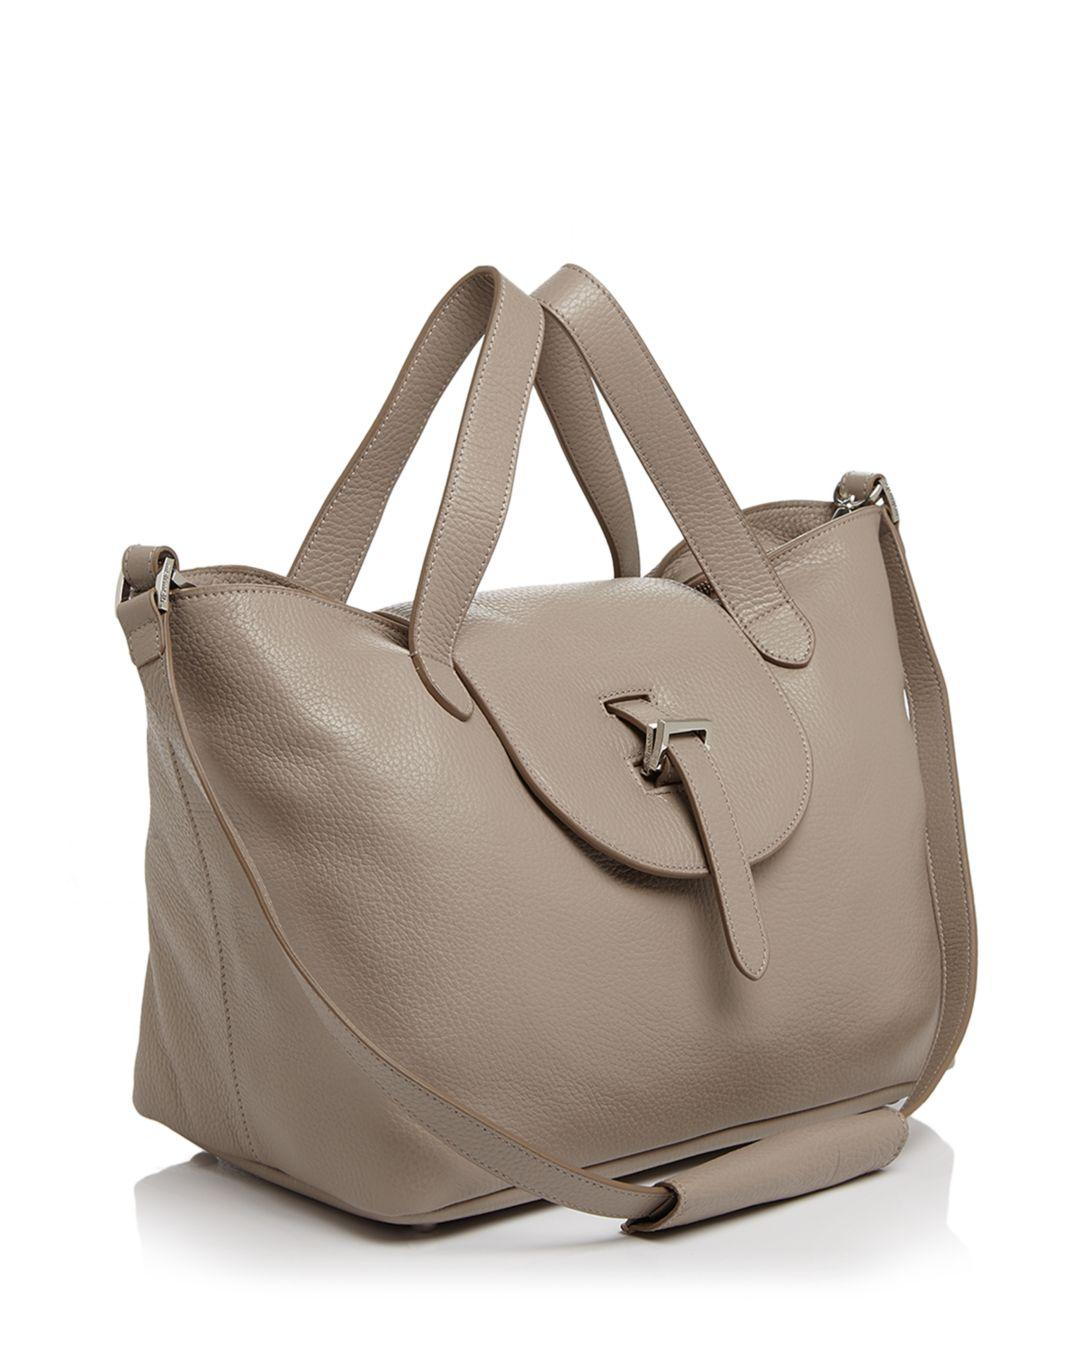 meli melo Leather Medium Thela Zipper Tote in Tan/Gold (Brown)